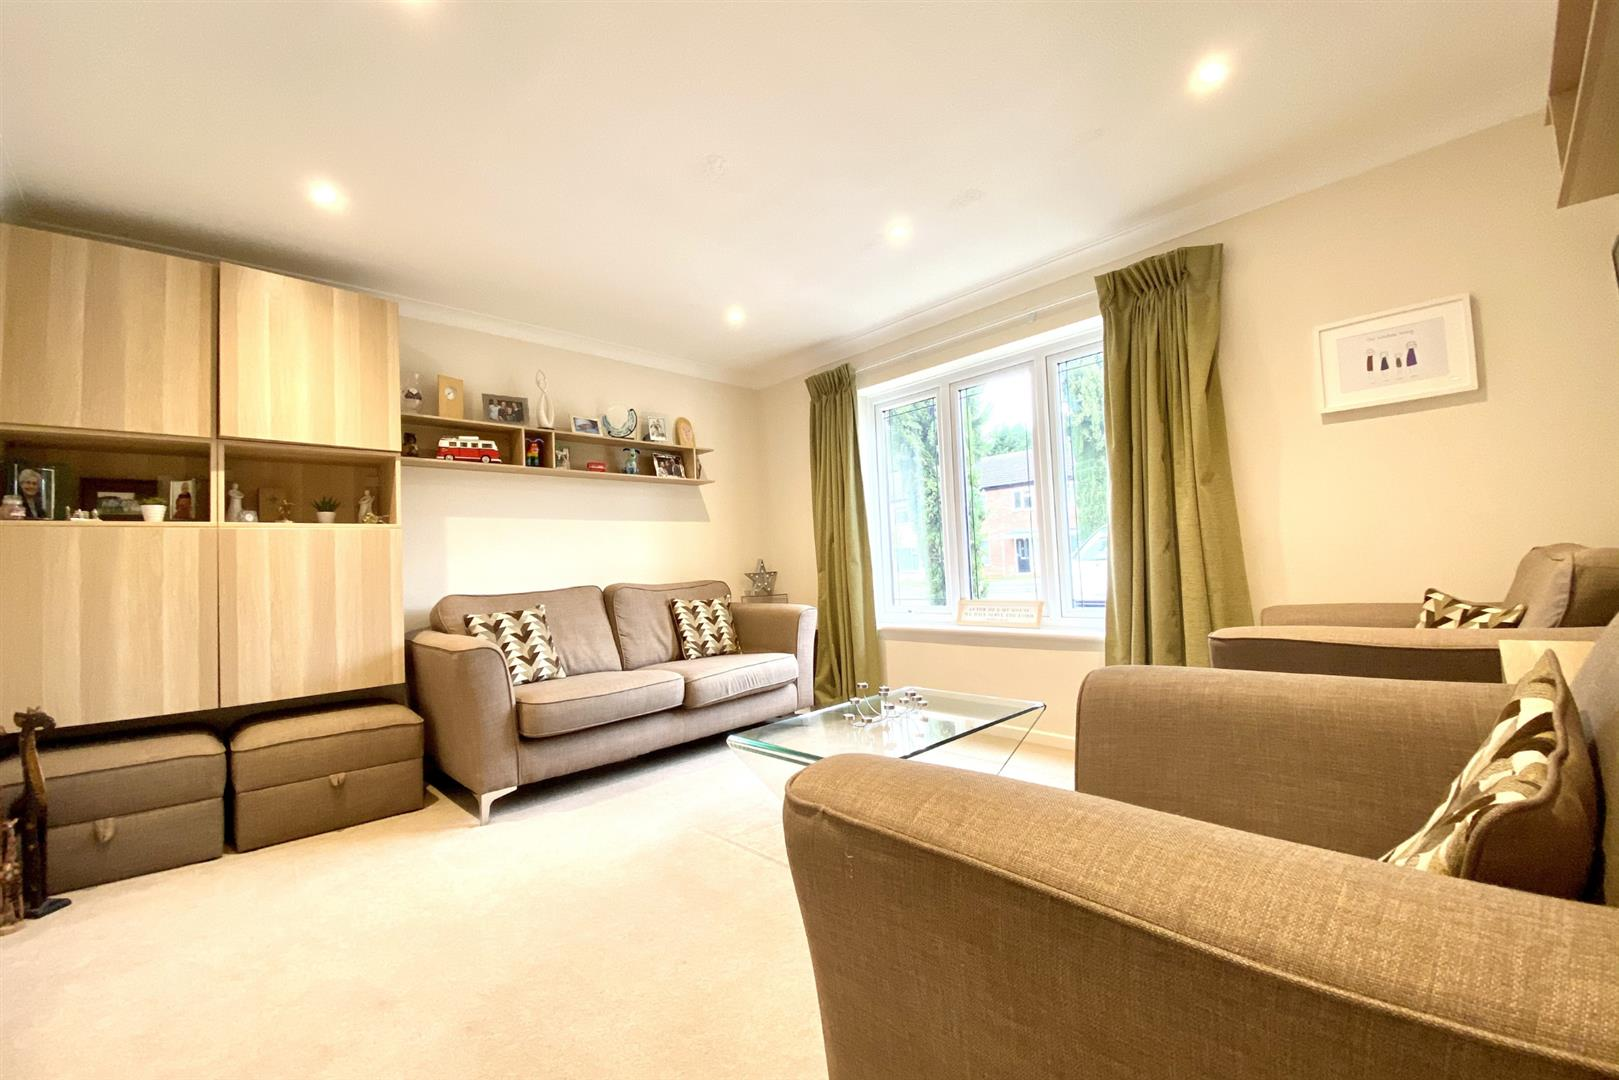 3 bed end of terrace for sale in Winnersh  - Property Image 11